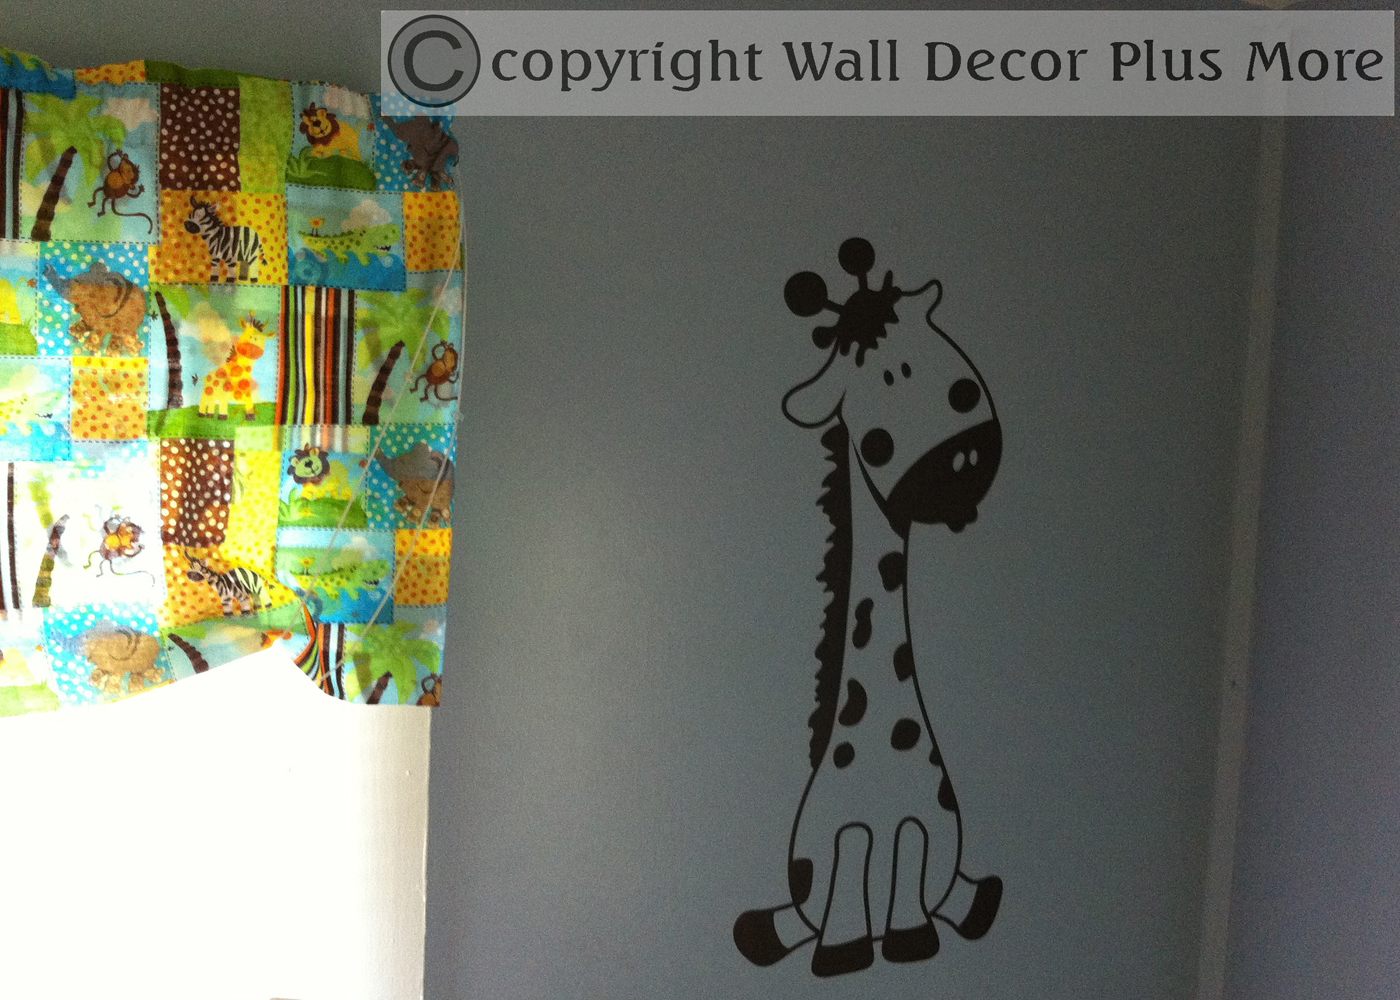 giraffe-wall-decal-sticker-in-jungle-room.jpg